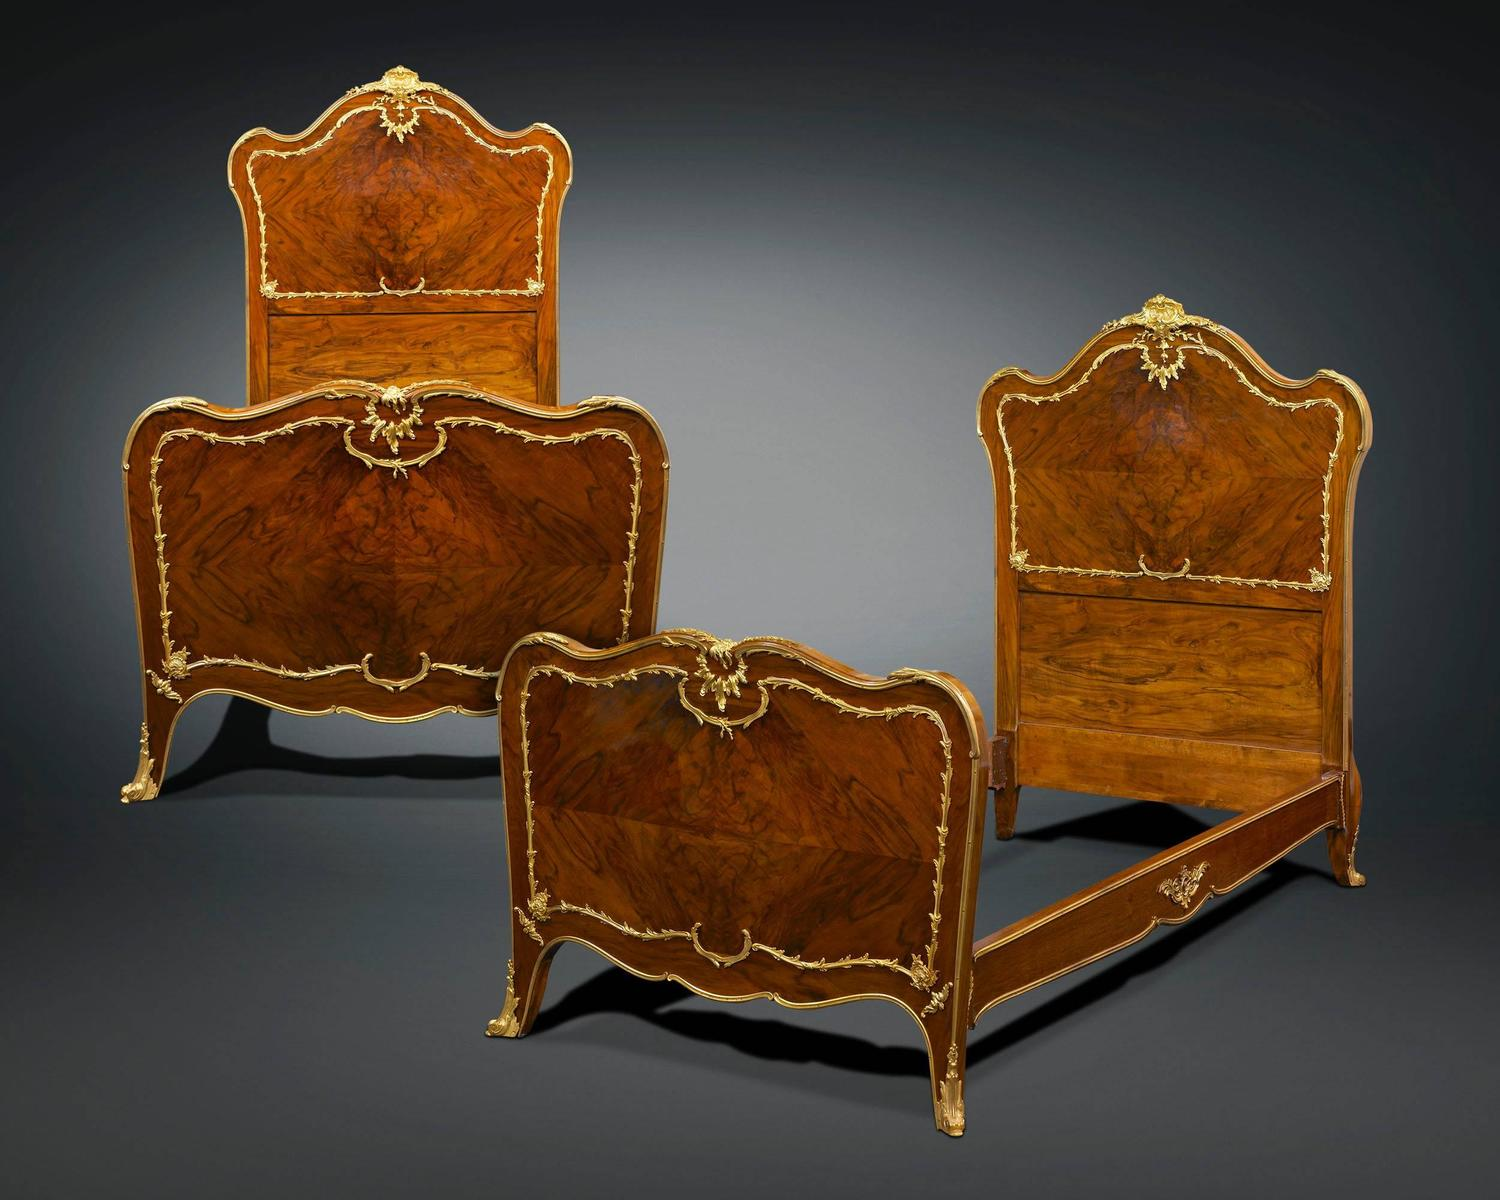 Pair of twin beds by francois linke for sale at 1stdibs for 2 twin beds for sale